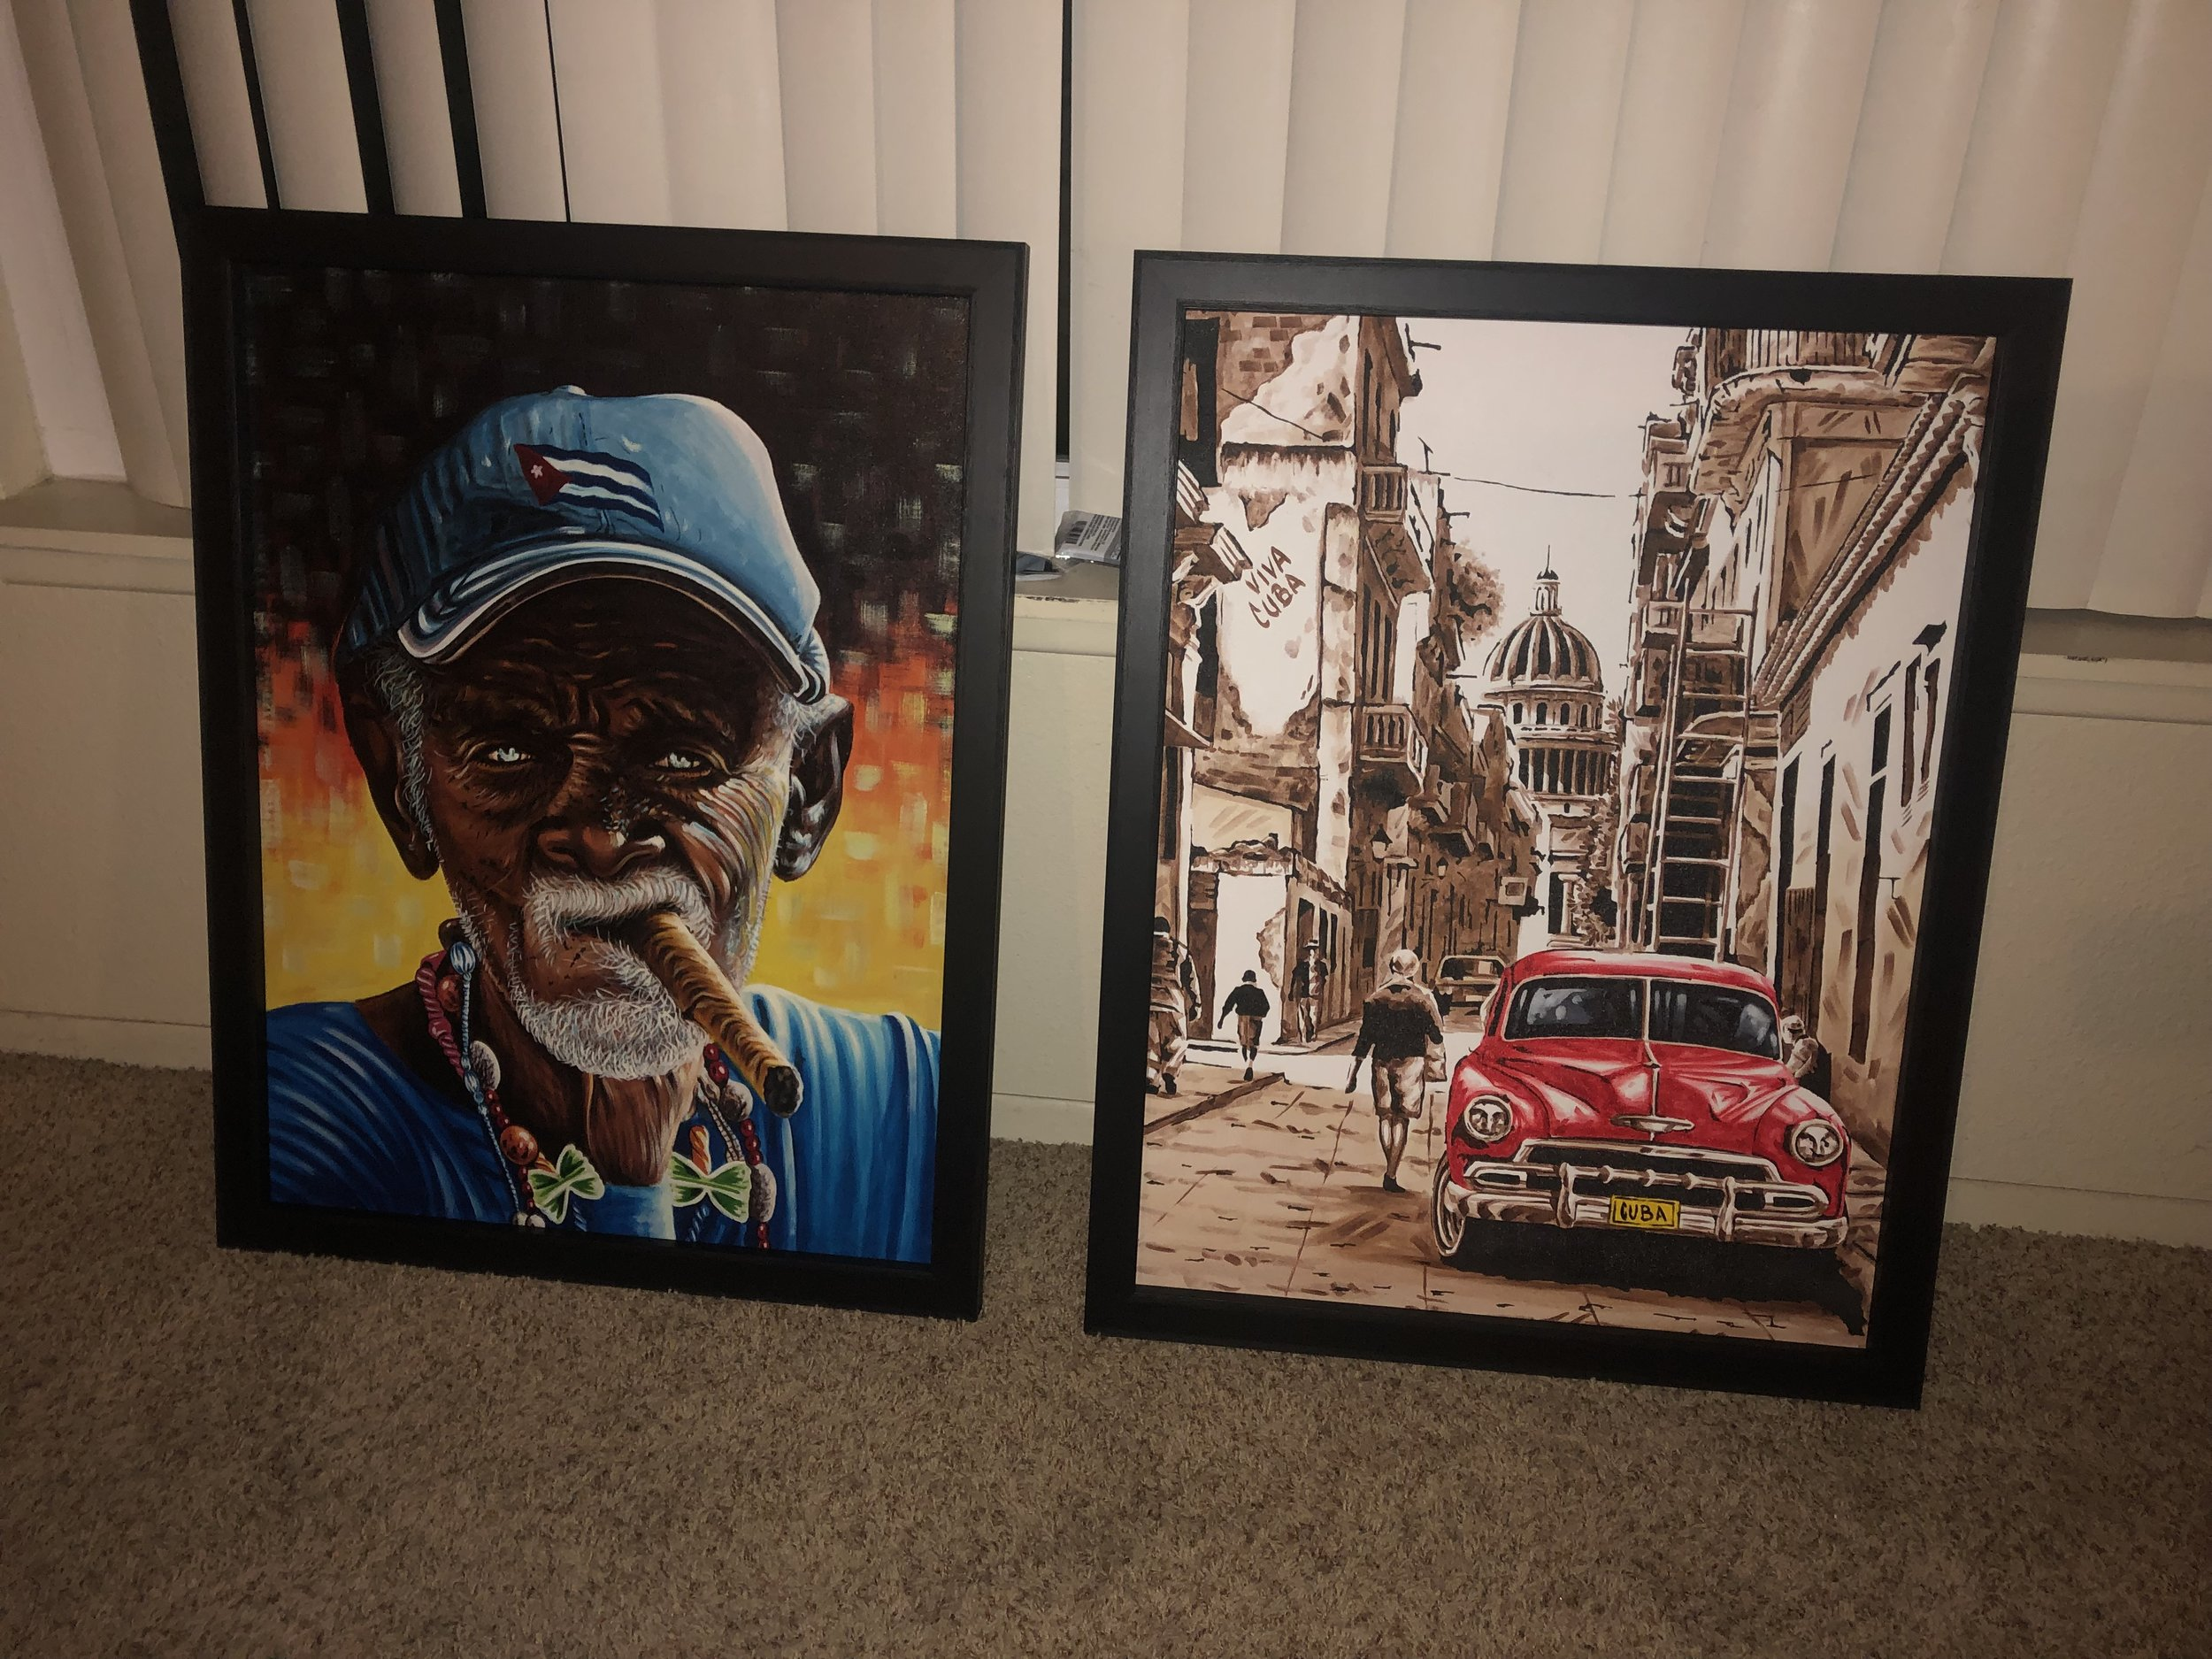 A couple paintings we bought at the market and had framed.